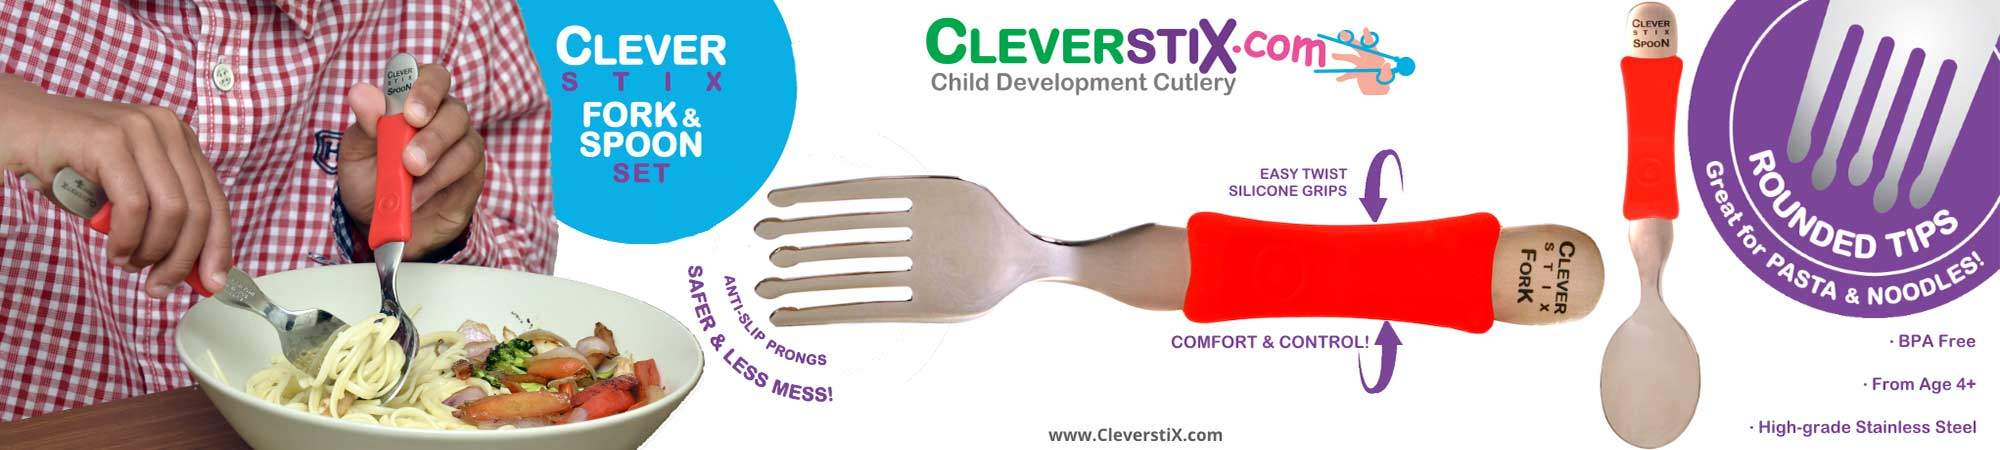 Little Bird NEW: For Easier Mealtimes - The Clever Fork & Spoon Set from CleverstiX.com! 50% Off